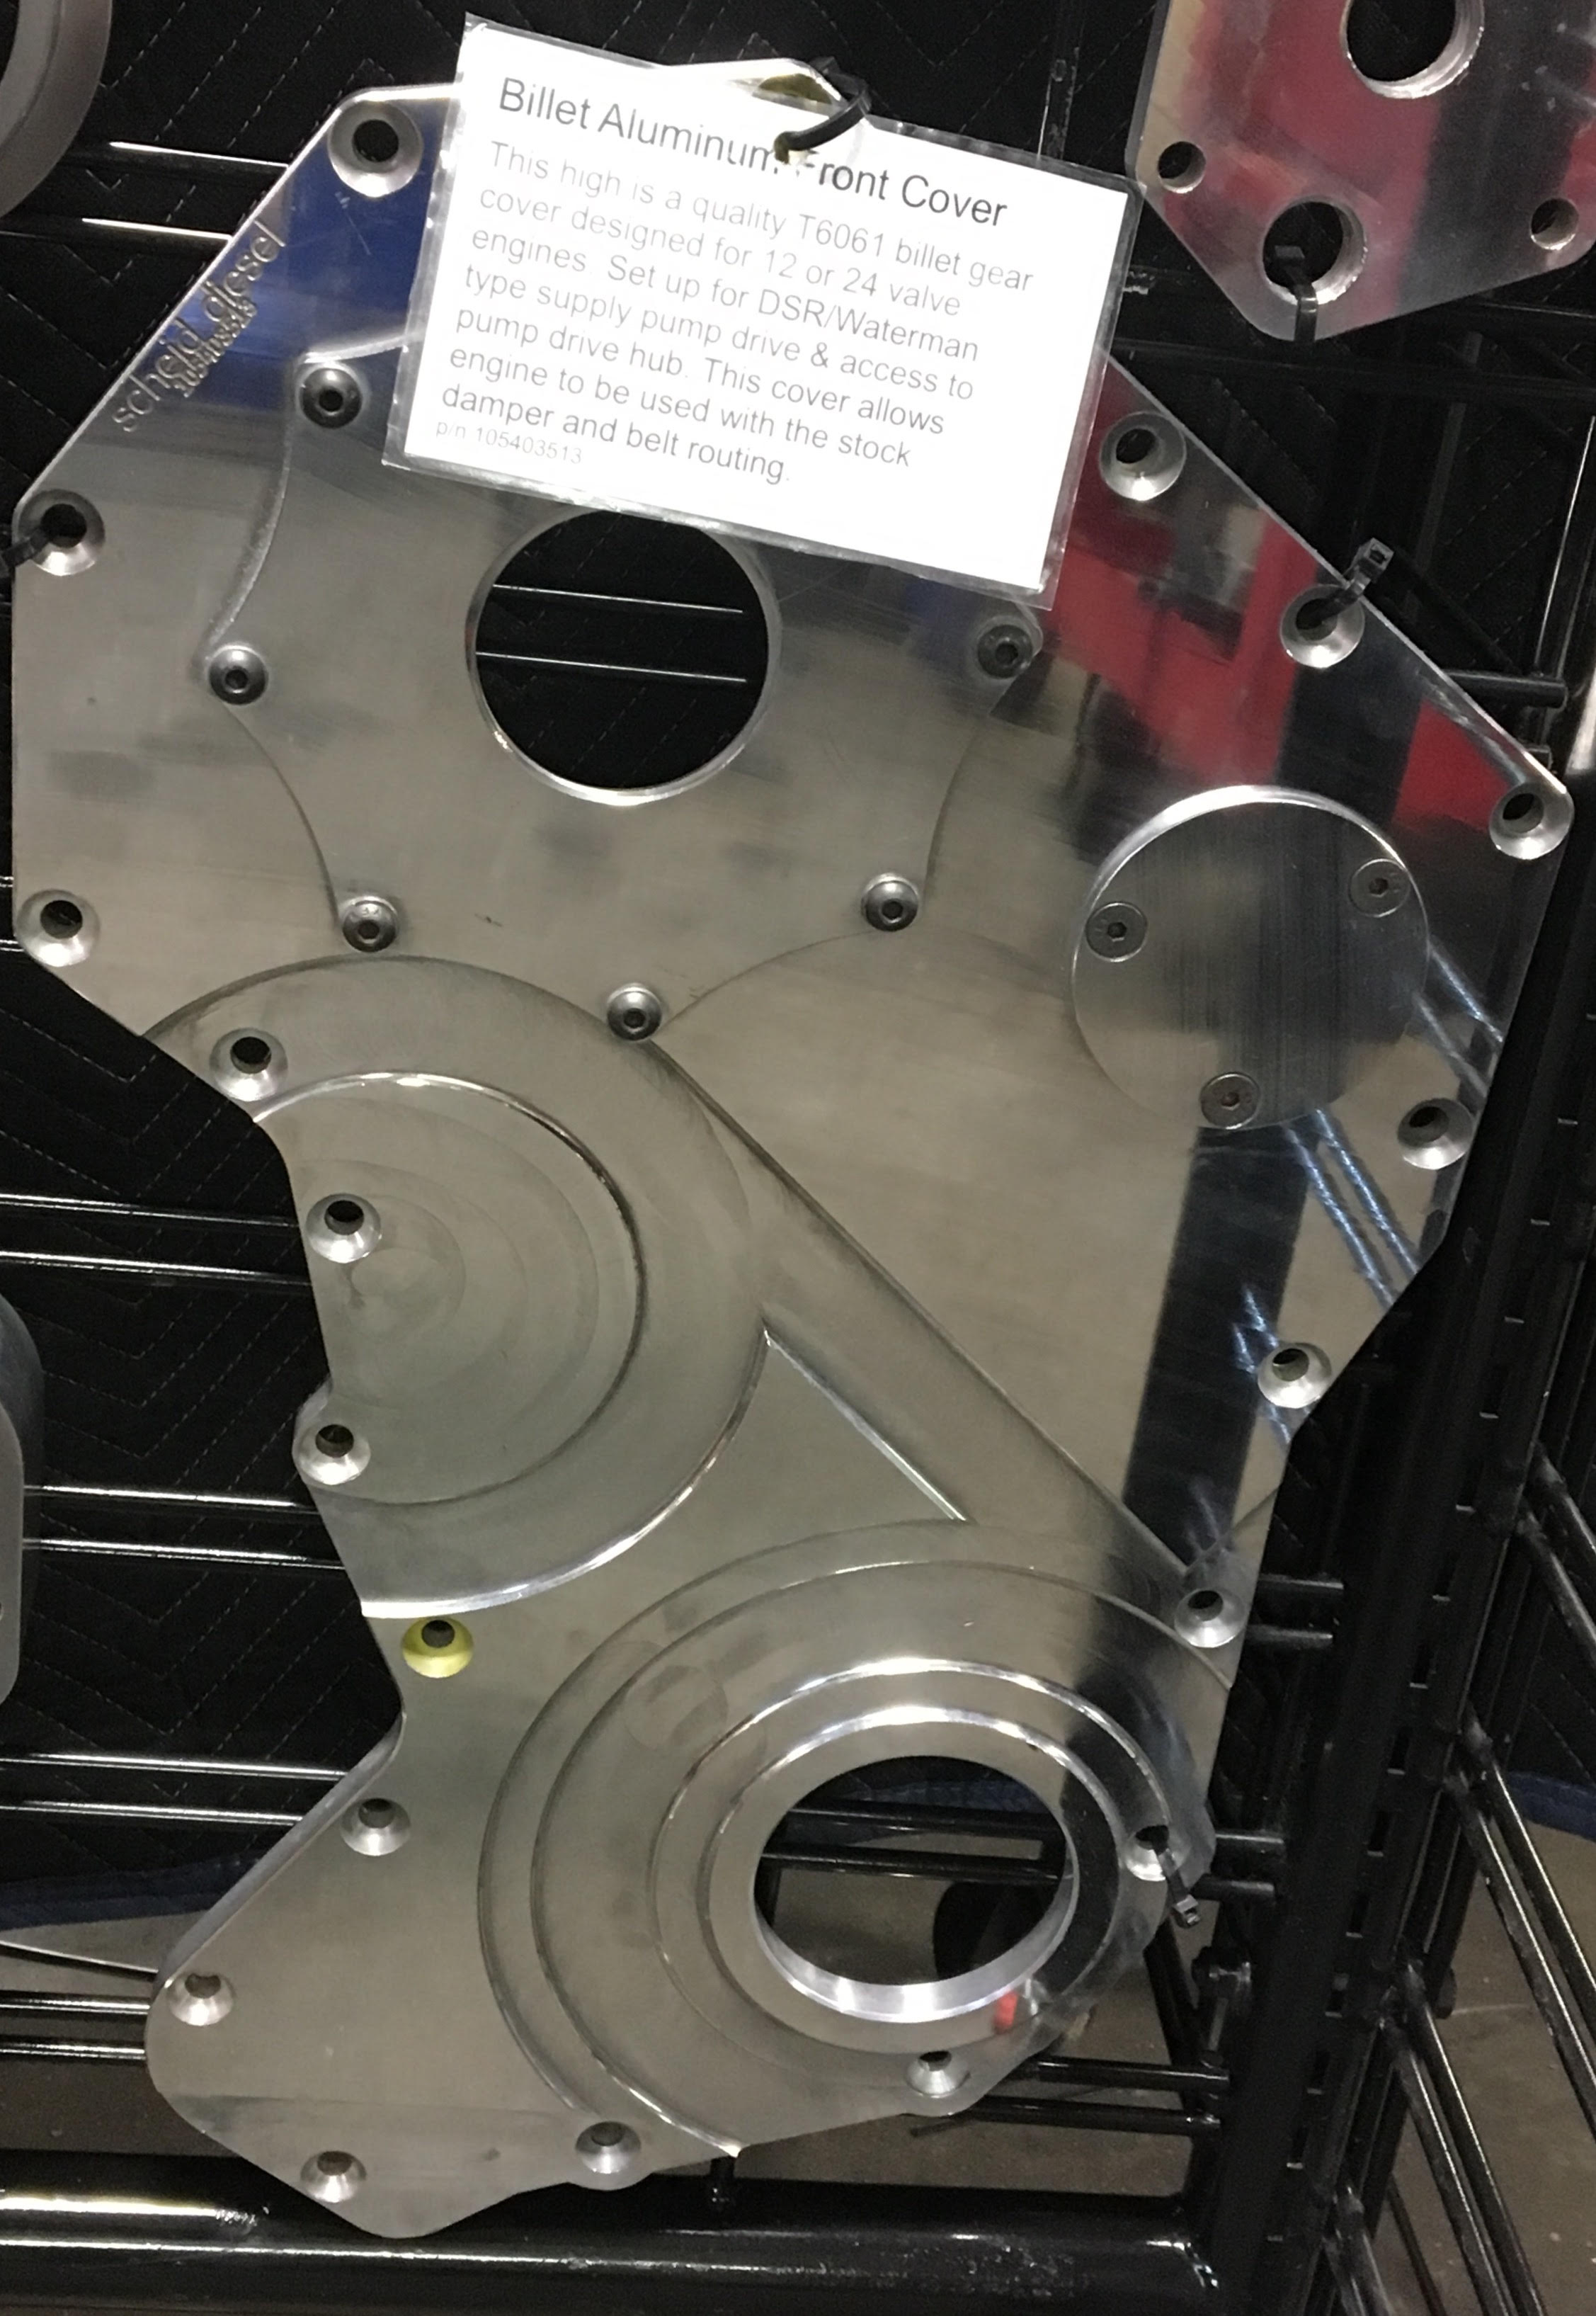 Cummins Billet Front Gear Housing Cover to use with Belt